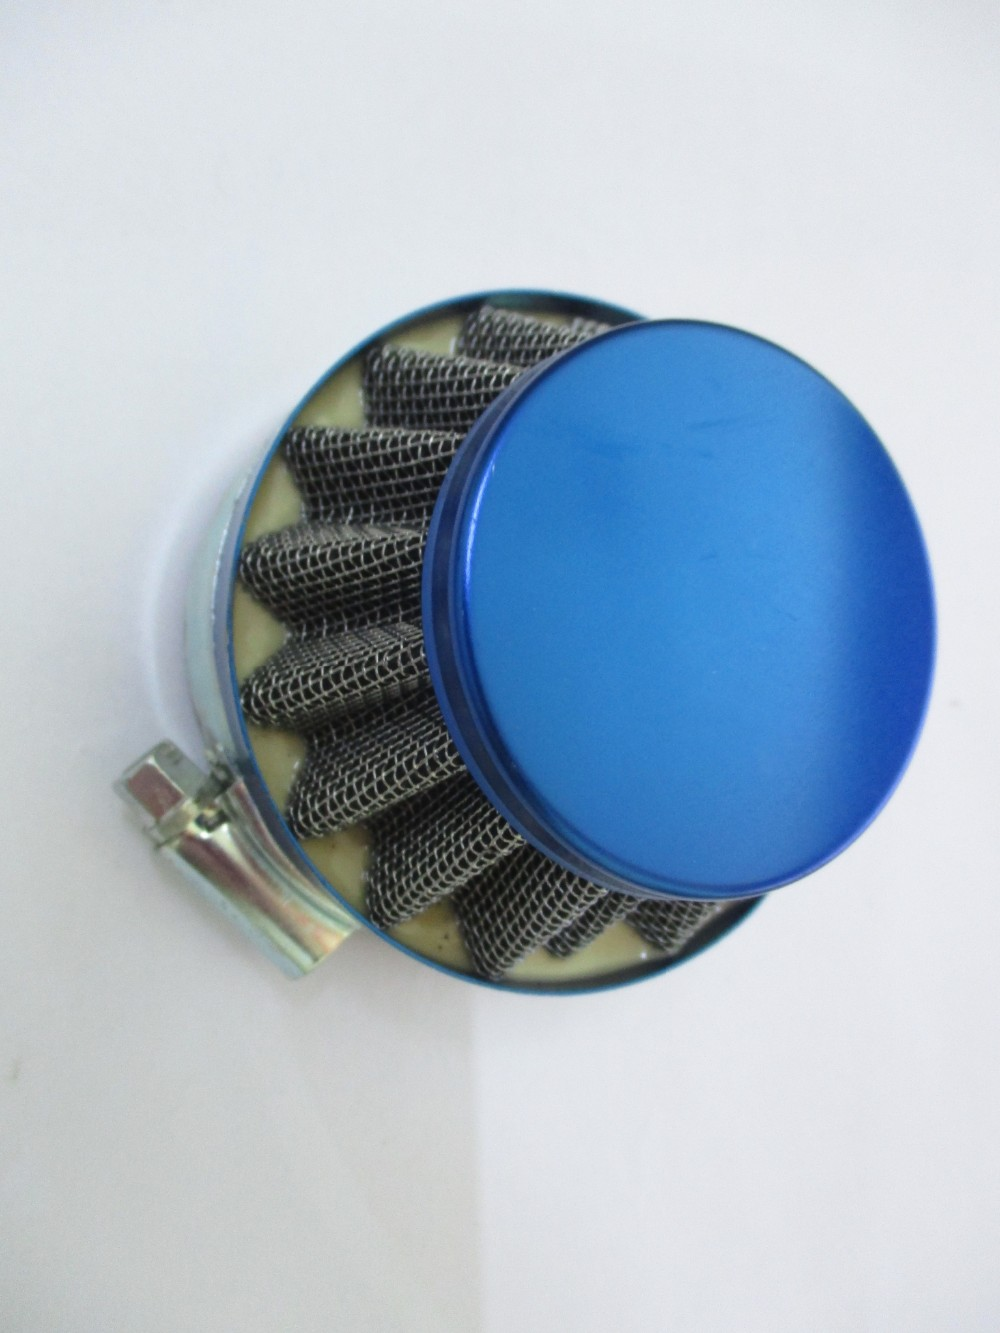 56mm 57mm 58mm 59mm 60mm size Filter cleaner for minibike moped motorized sha1515 carburetor air filter